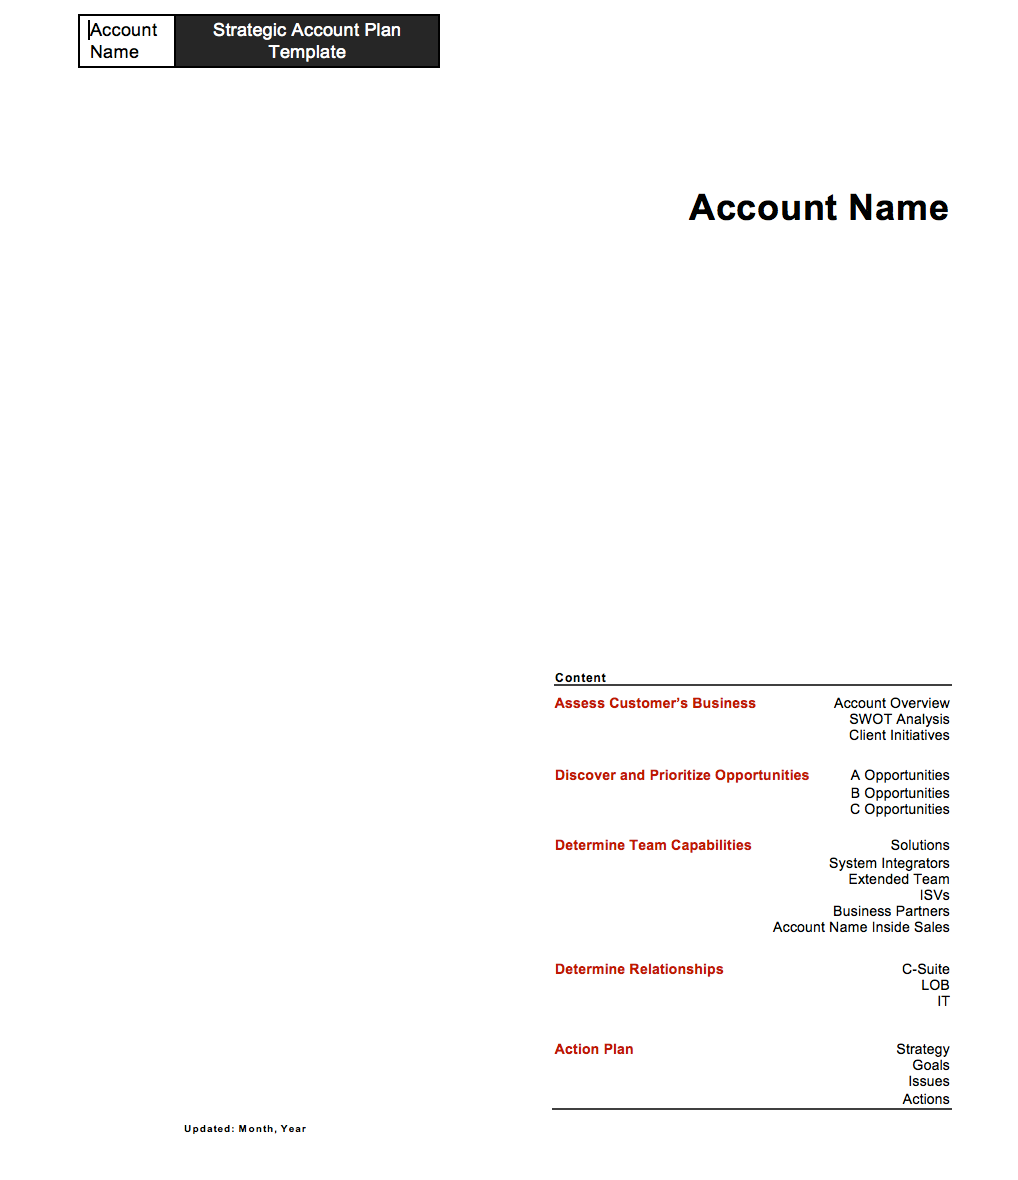 Strategic Account Plan Template for B2B Sales Released by Four Quadrant